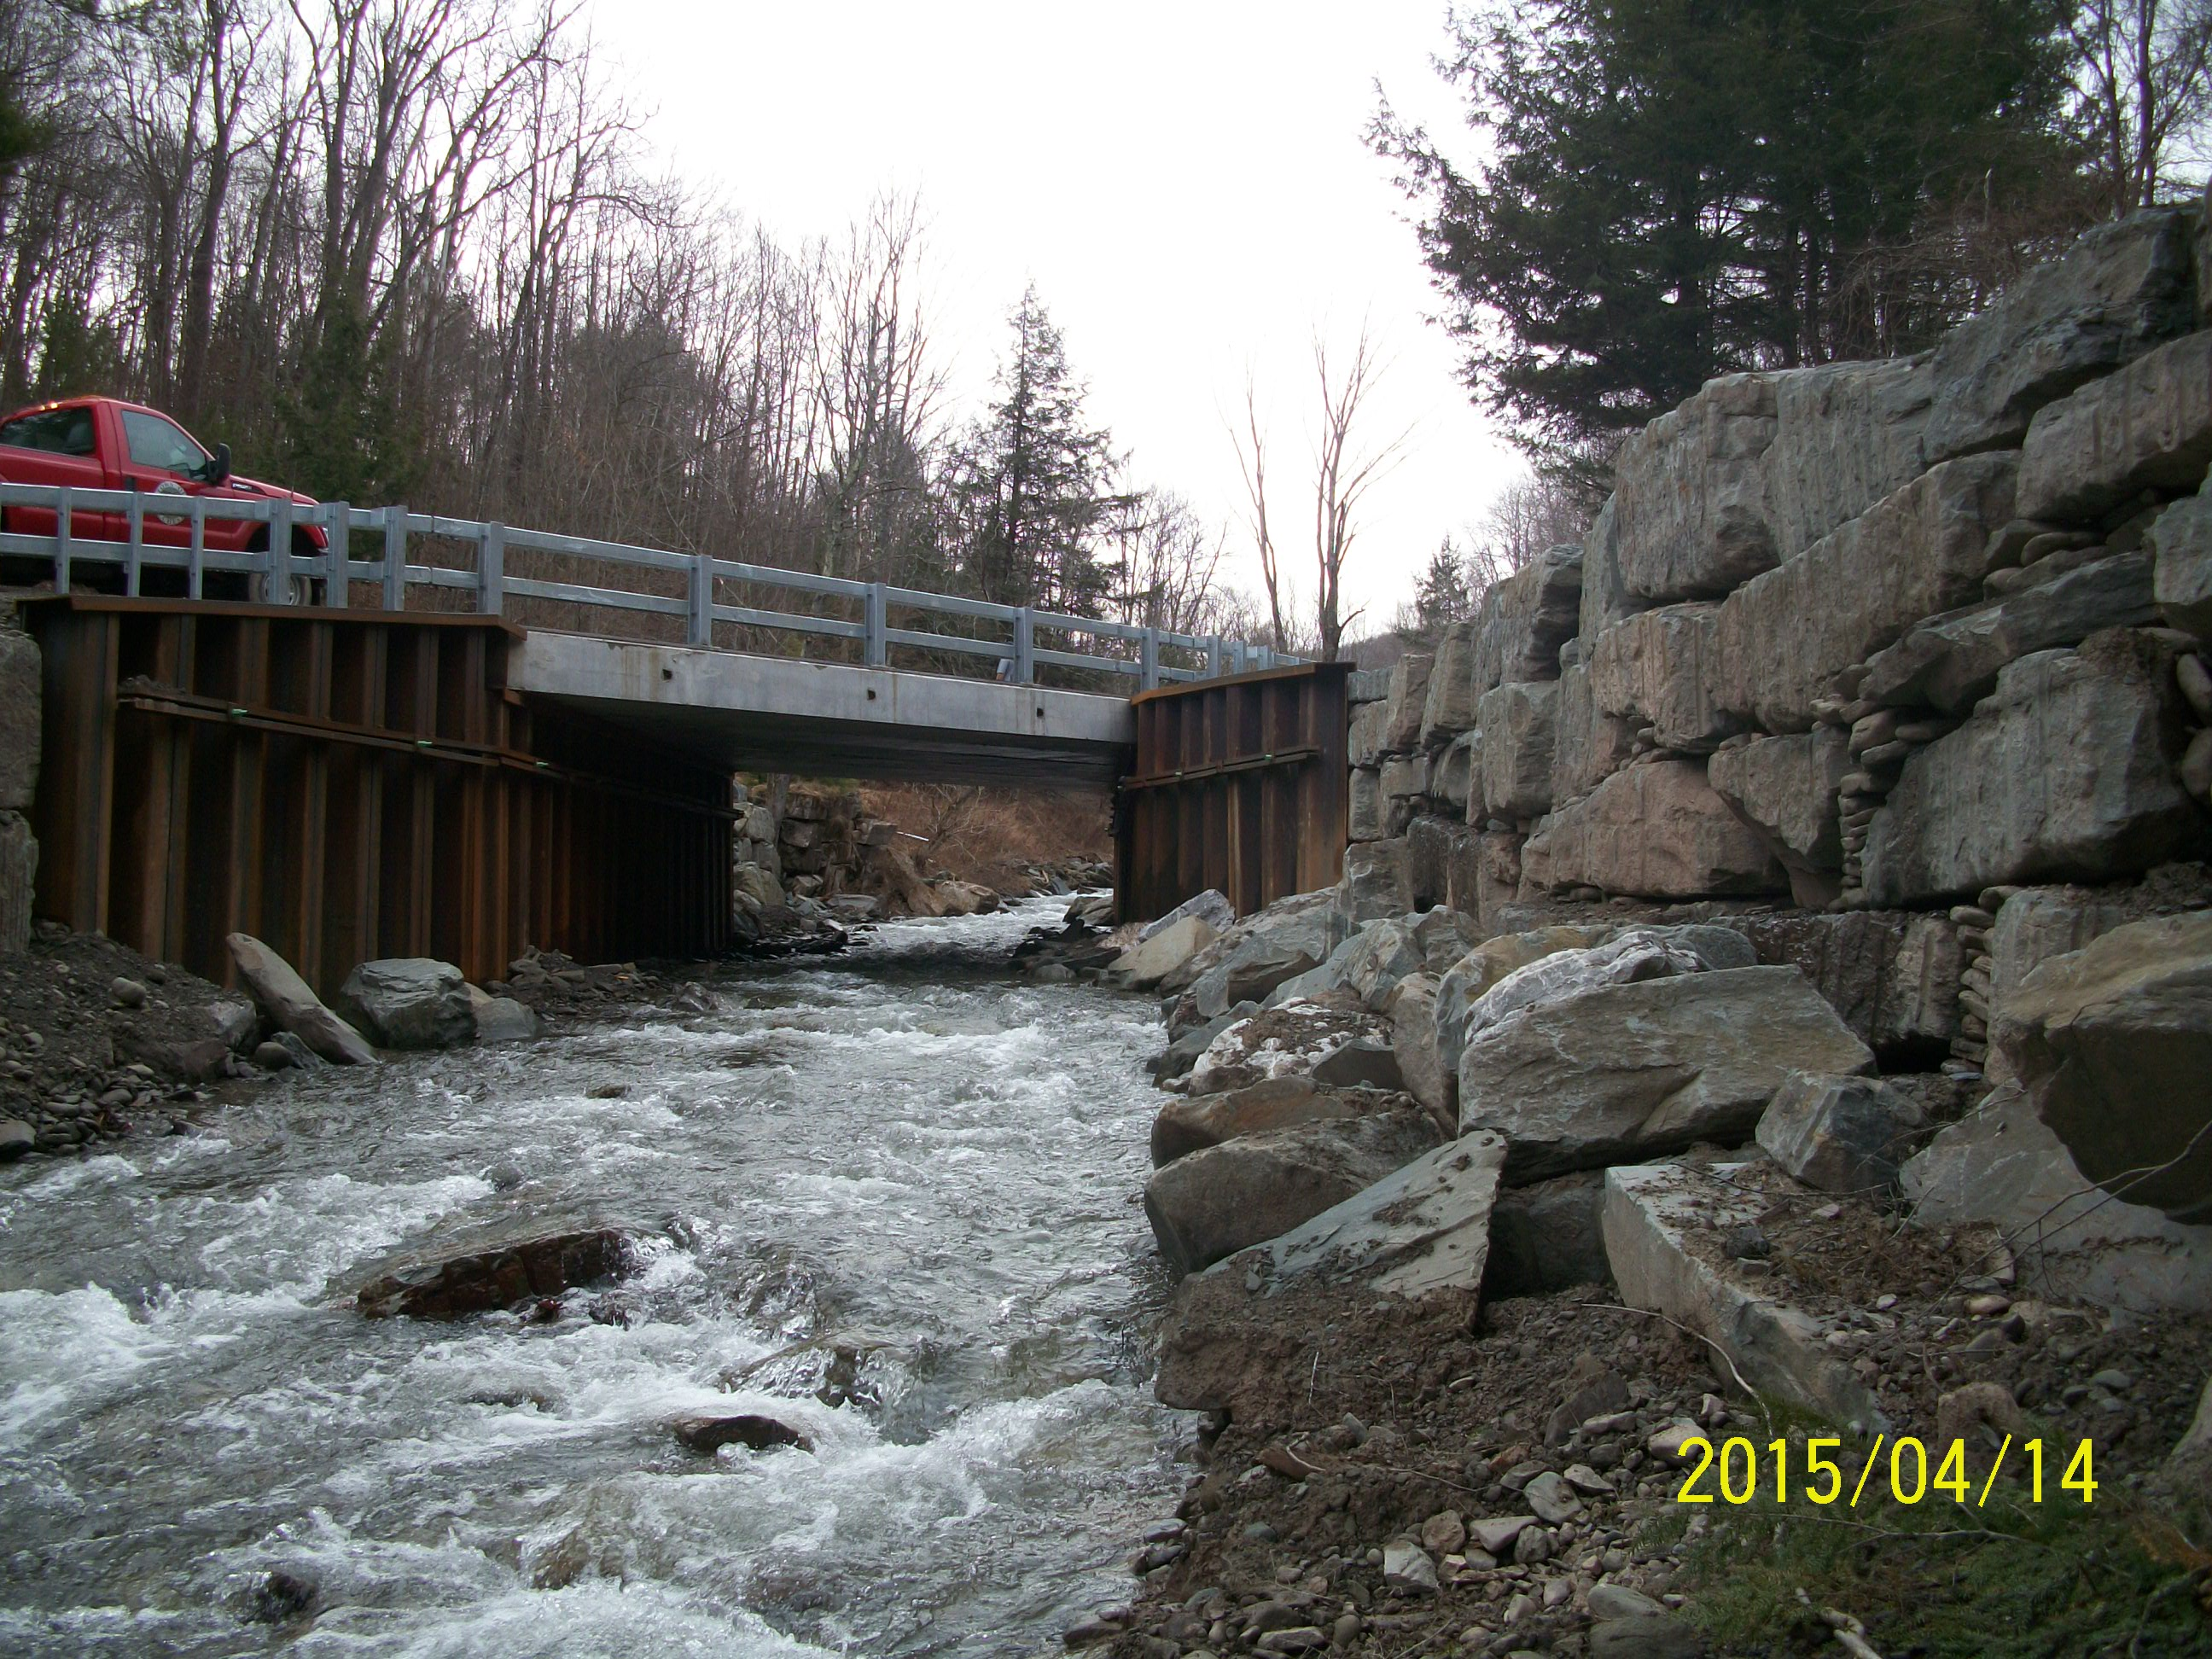 Town of Colchester, NY- HolidayBrook